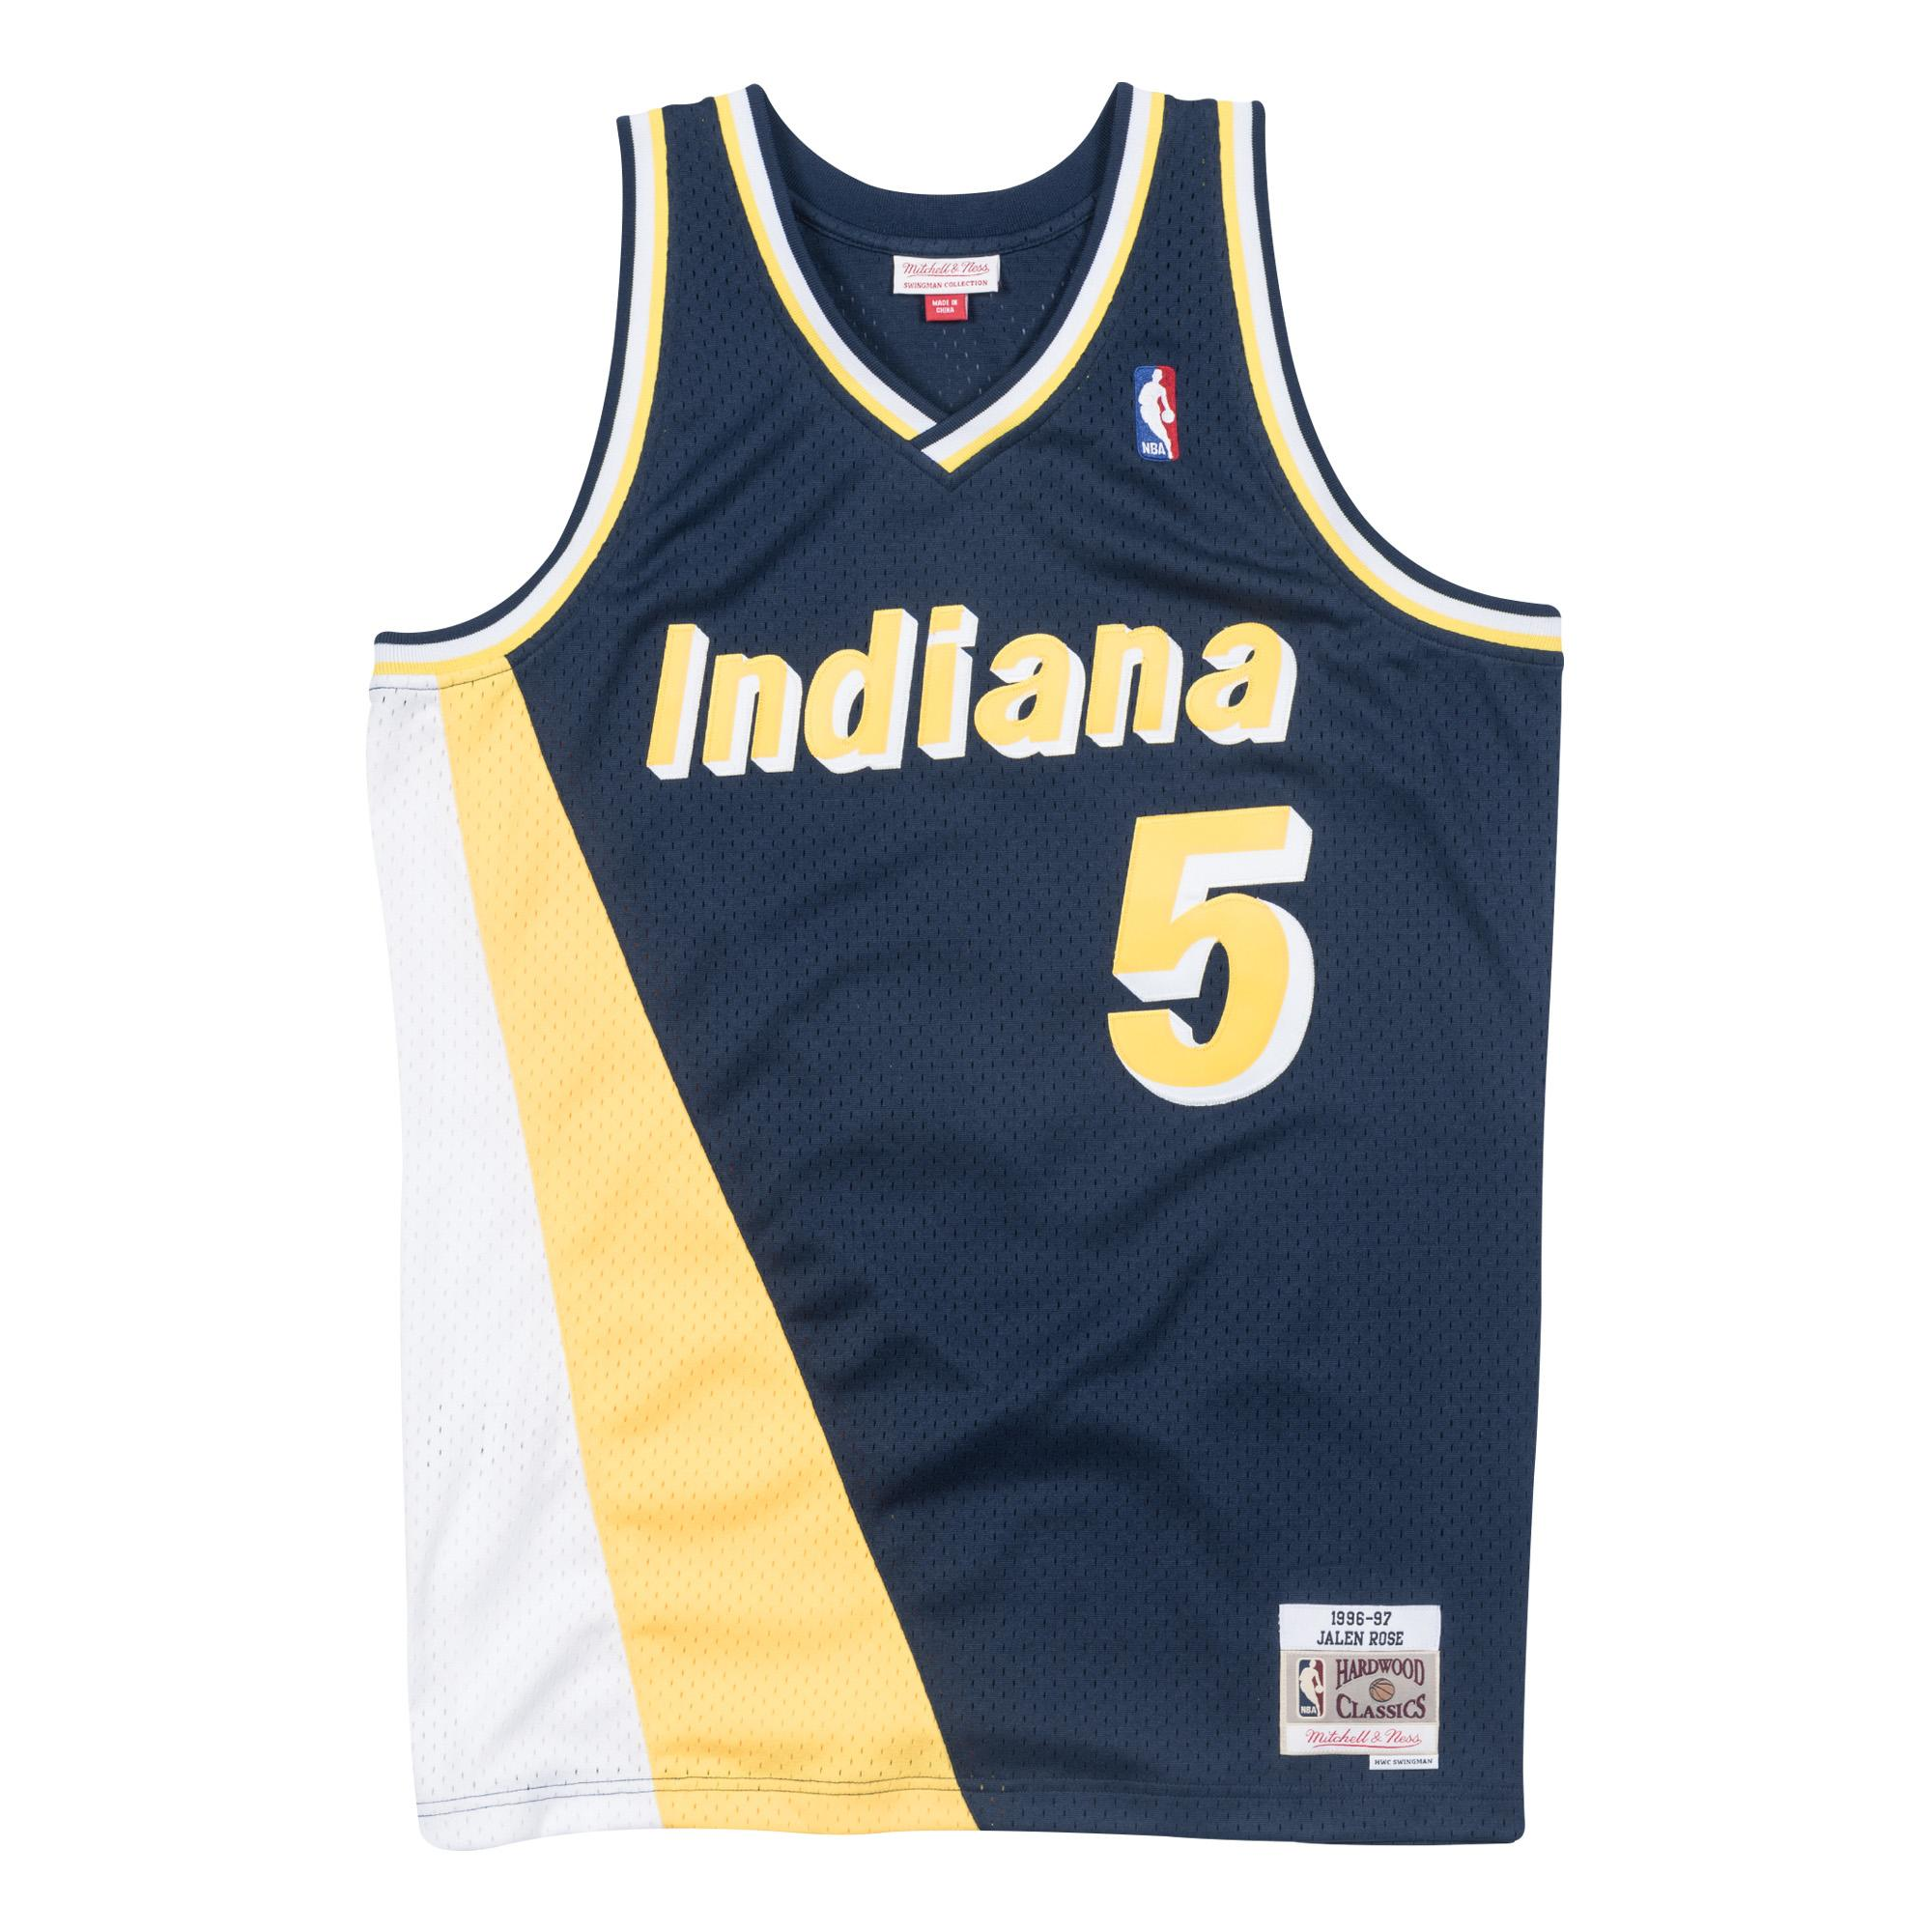 Jalen Rose 1996-97 Road Swingman Jersey Indiana Pacers £90.00 3db1c058a